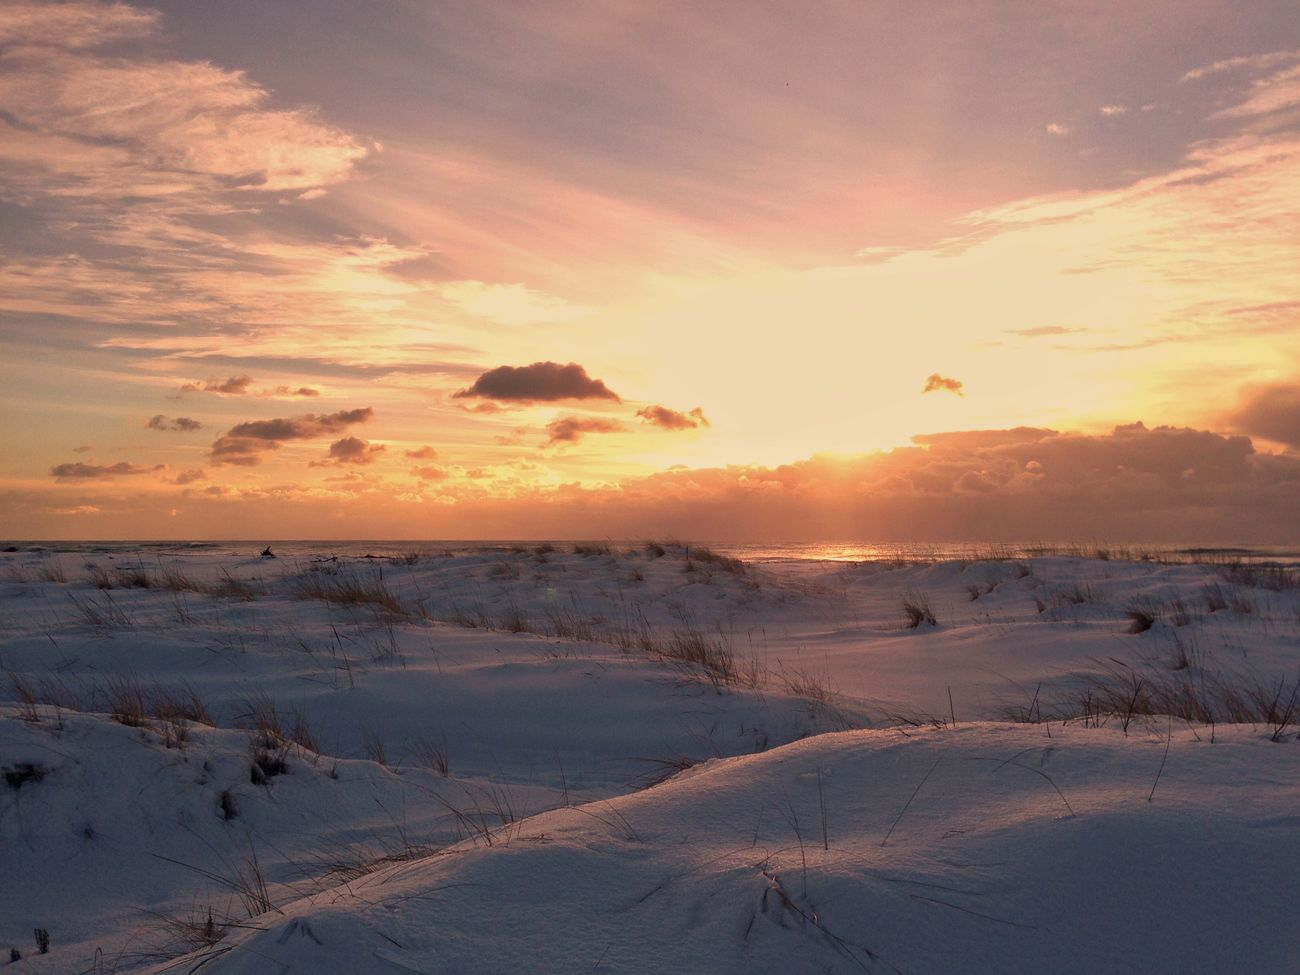 IPhone IPhoneography Mobilephotography Snow Winter Sunset Beauty In Nature Nature Sky EyeEm Nature Lover Cold Temperature Snow ❄ Surf Light And Shadow Beauty In Nature Sanset Collection Evning Sky Horizon EvningGlow